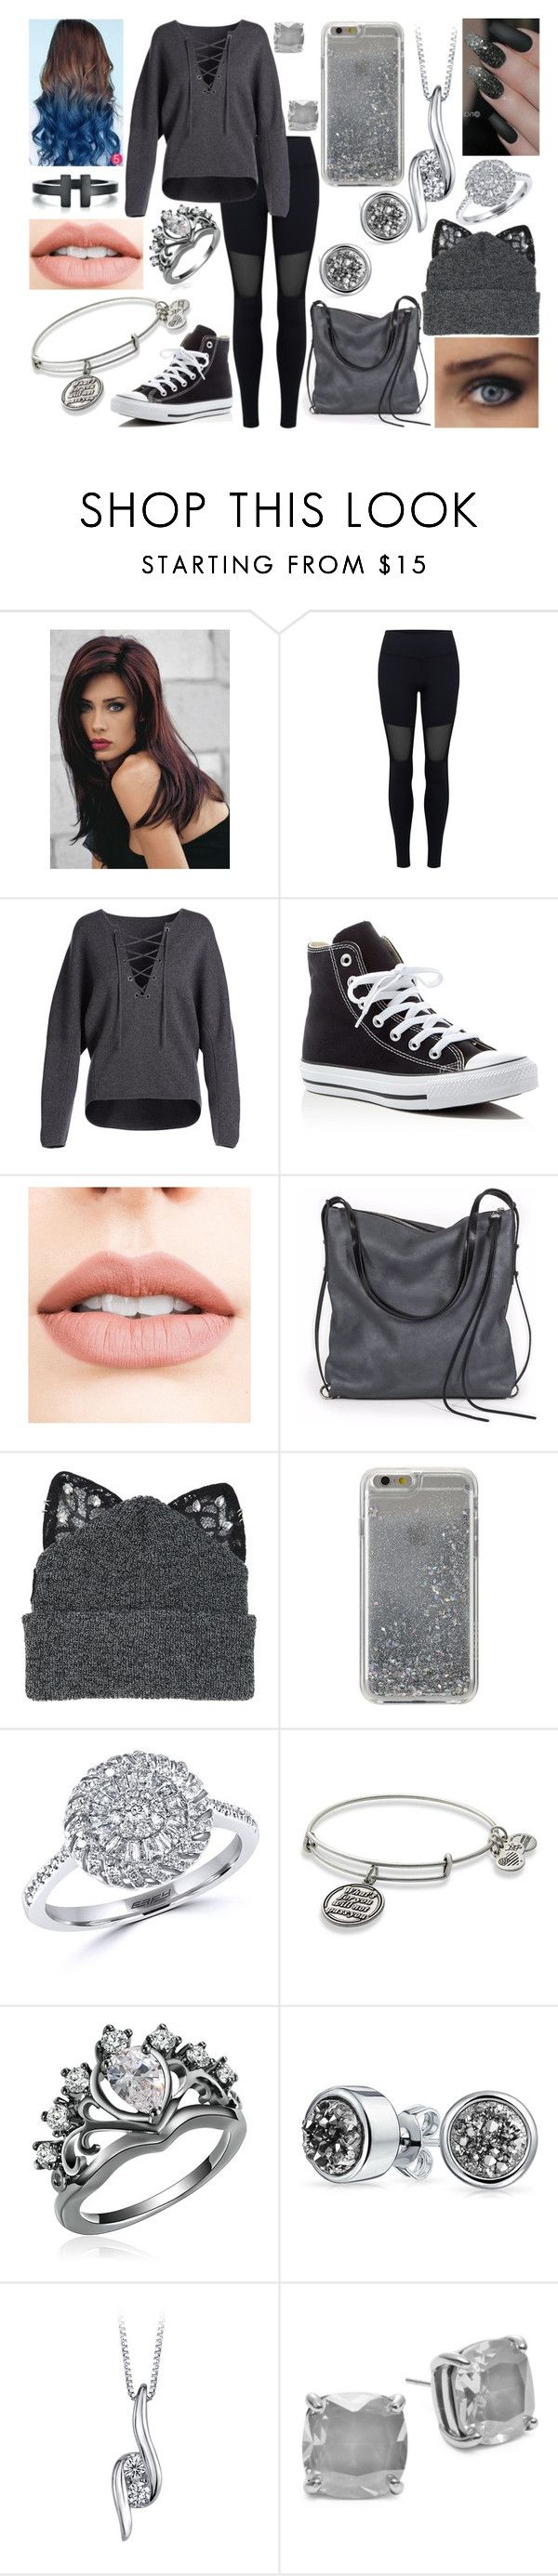 """""""#8✨"""" by kenziebandgeek ❤ liked on Polyvore featuring Revlon, Varley, Vince, Converse, Jouer, Ina Kent, Silver Spoon Attire, Agent 18, Effy Jewelry and Alex and Ani"""